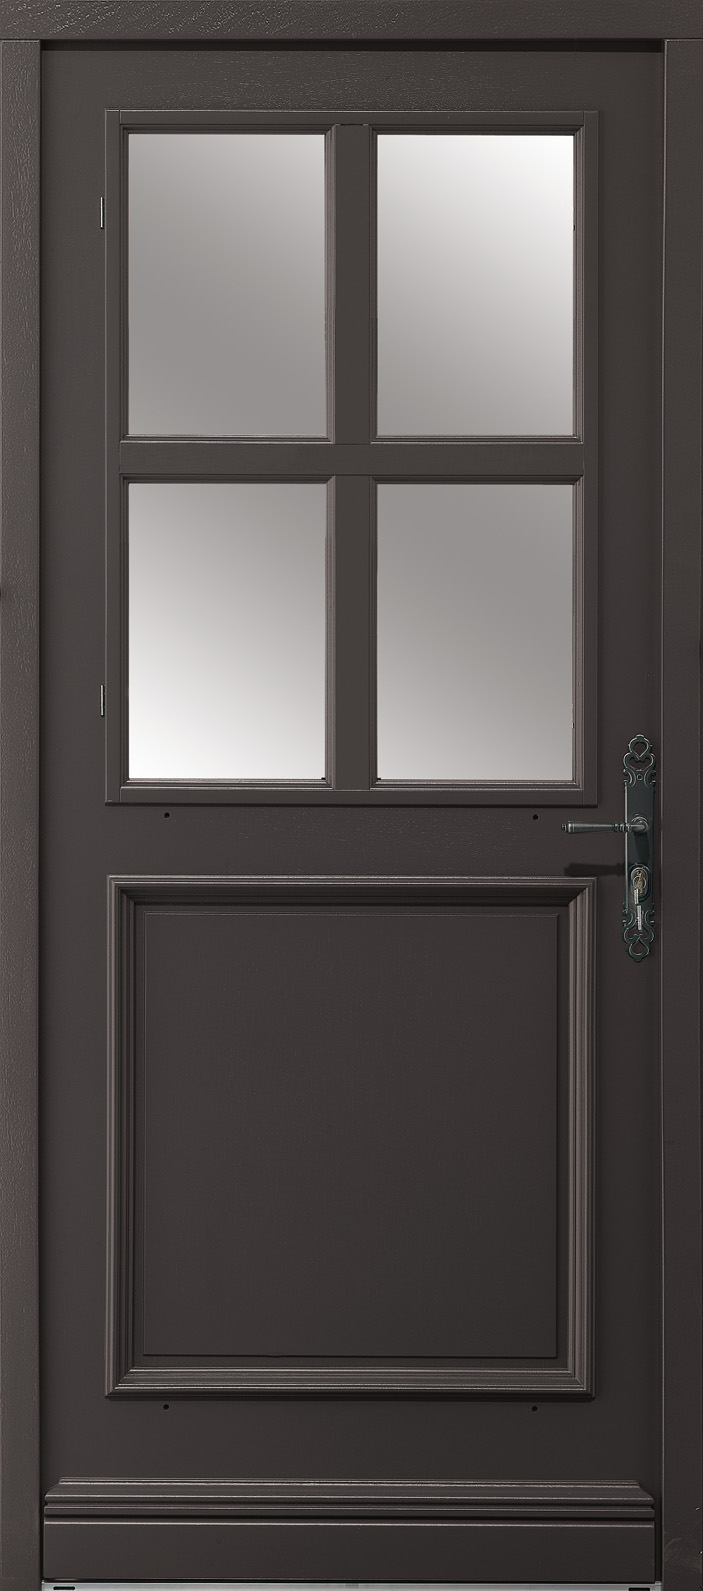 Portes d 39 entr e bois evenos swao for Porte 5 carreaux